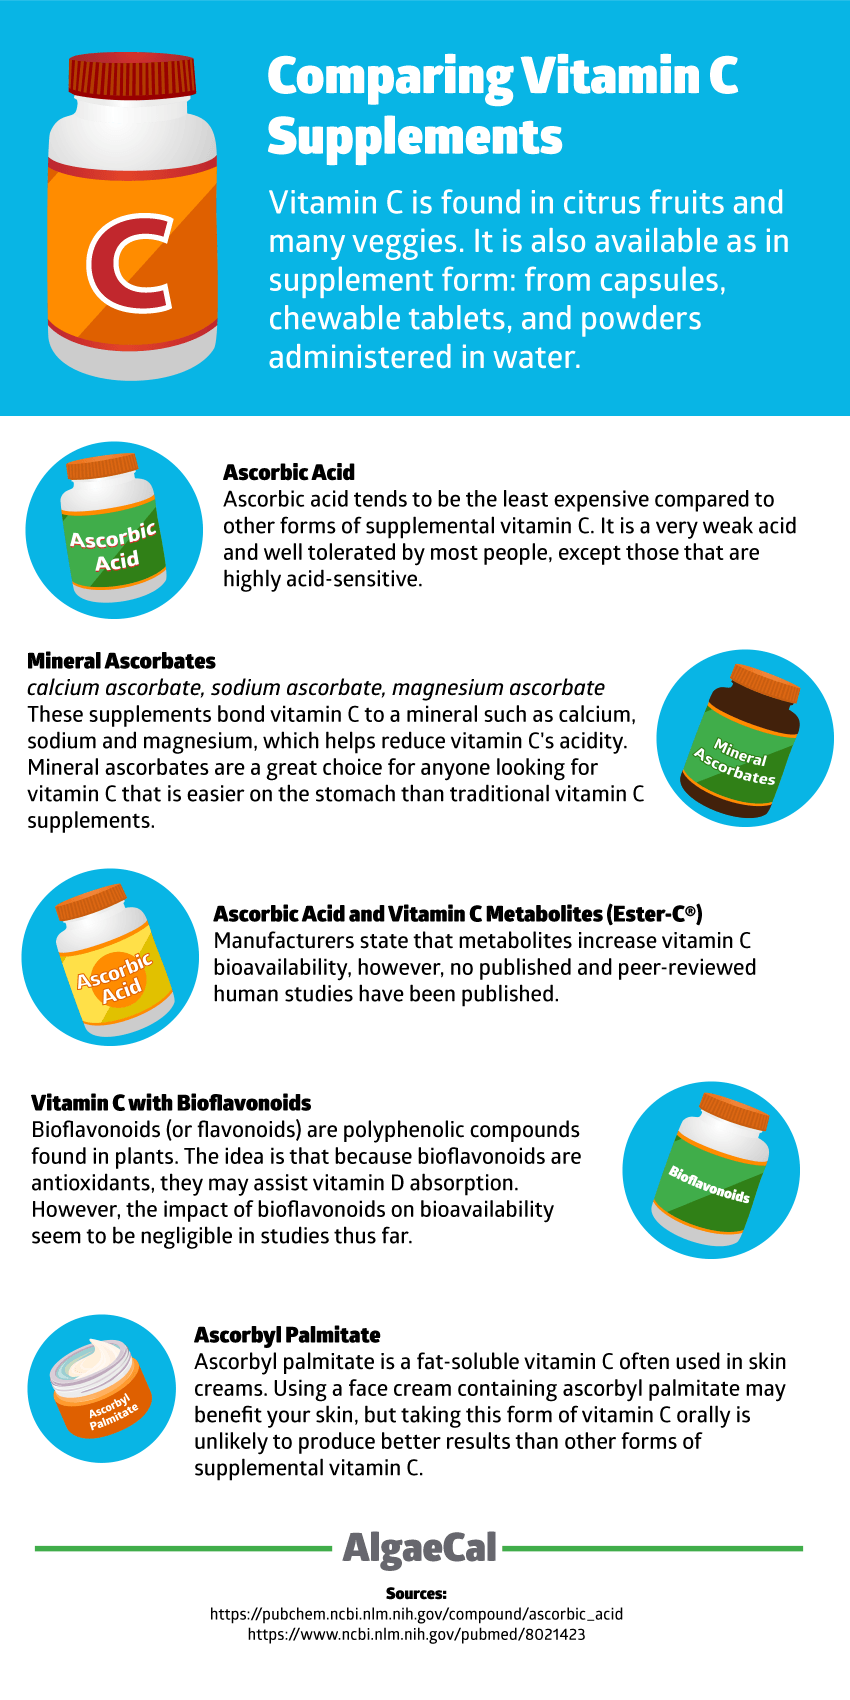 Comparing Vitamin C Supplements Infographic